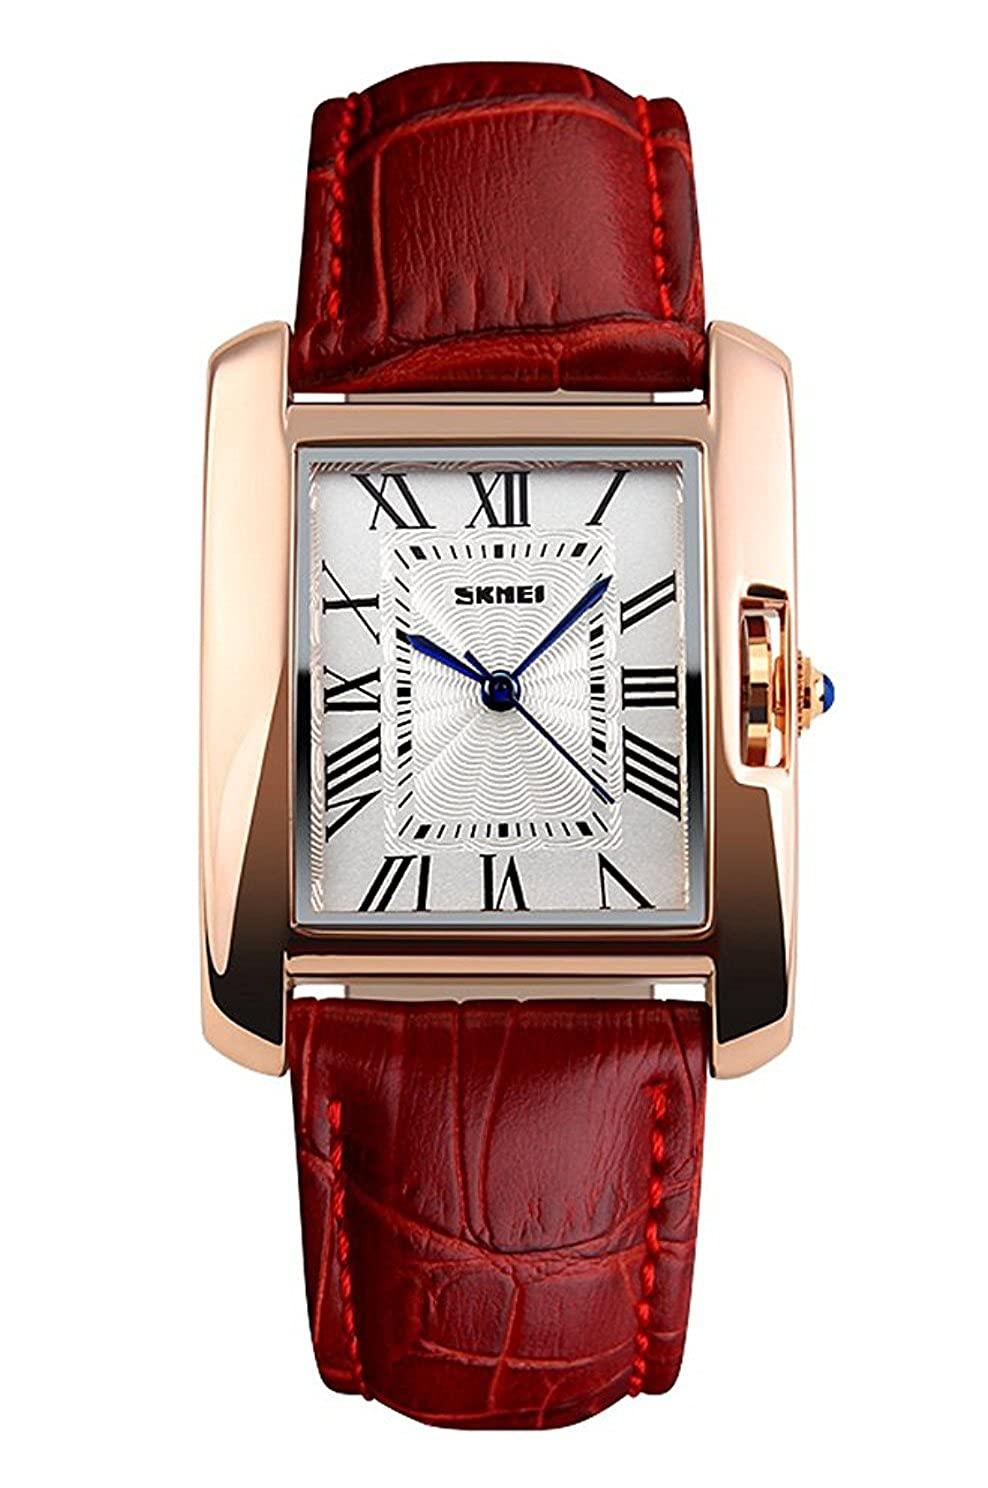 161812552be Amazon.com  MaDong Women s Luxury Square Rose Gold Case Quartz Waterproof Leather  Watches MDWH2  MaDong  Watches